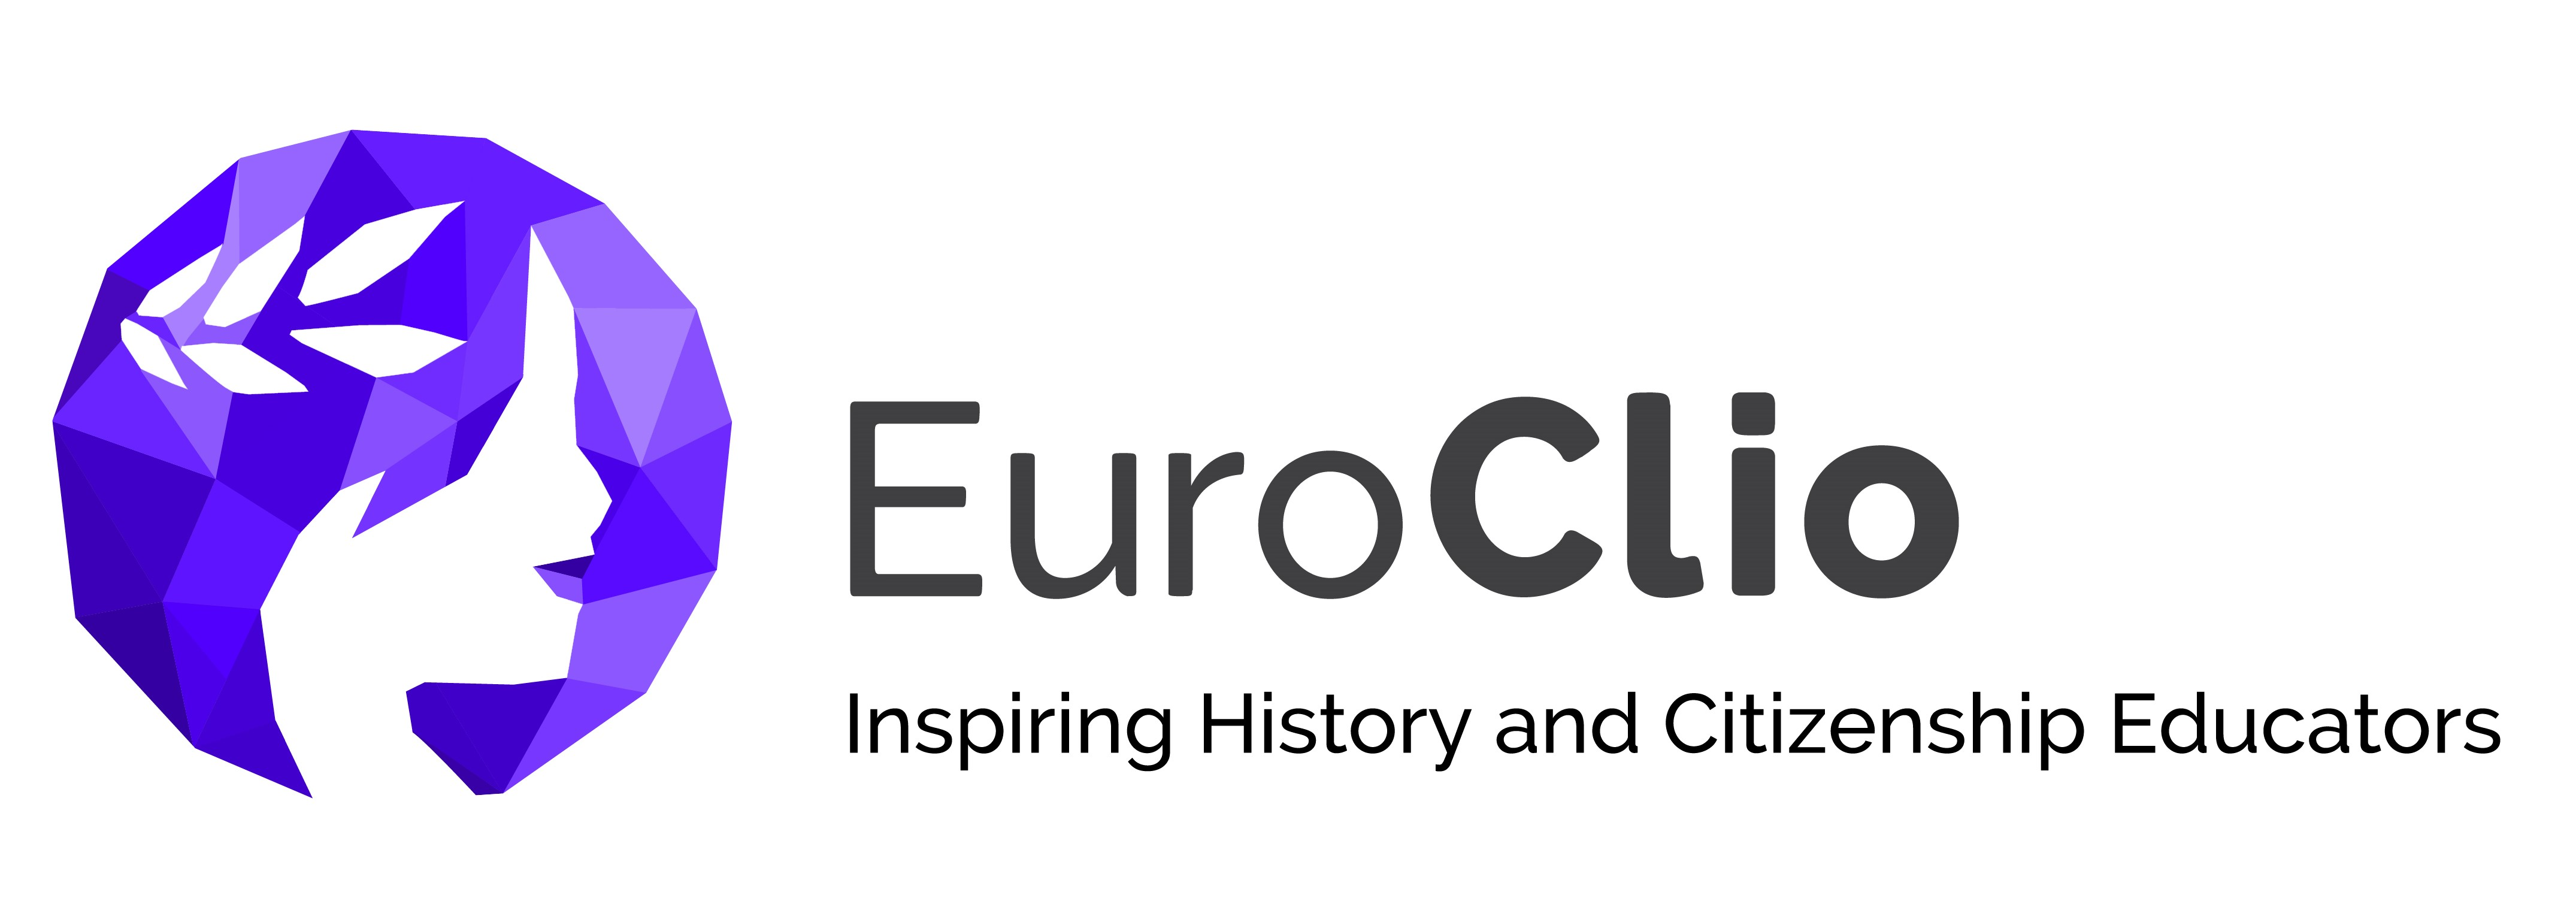 EuroClio - Inspiring History and Citizenship Educators